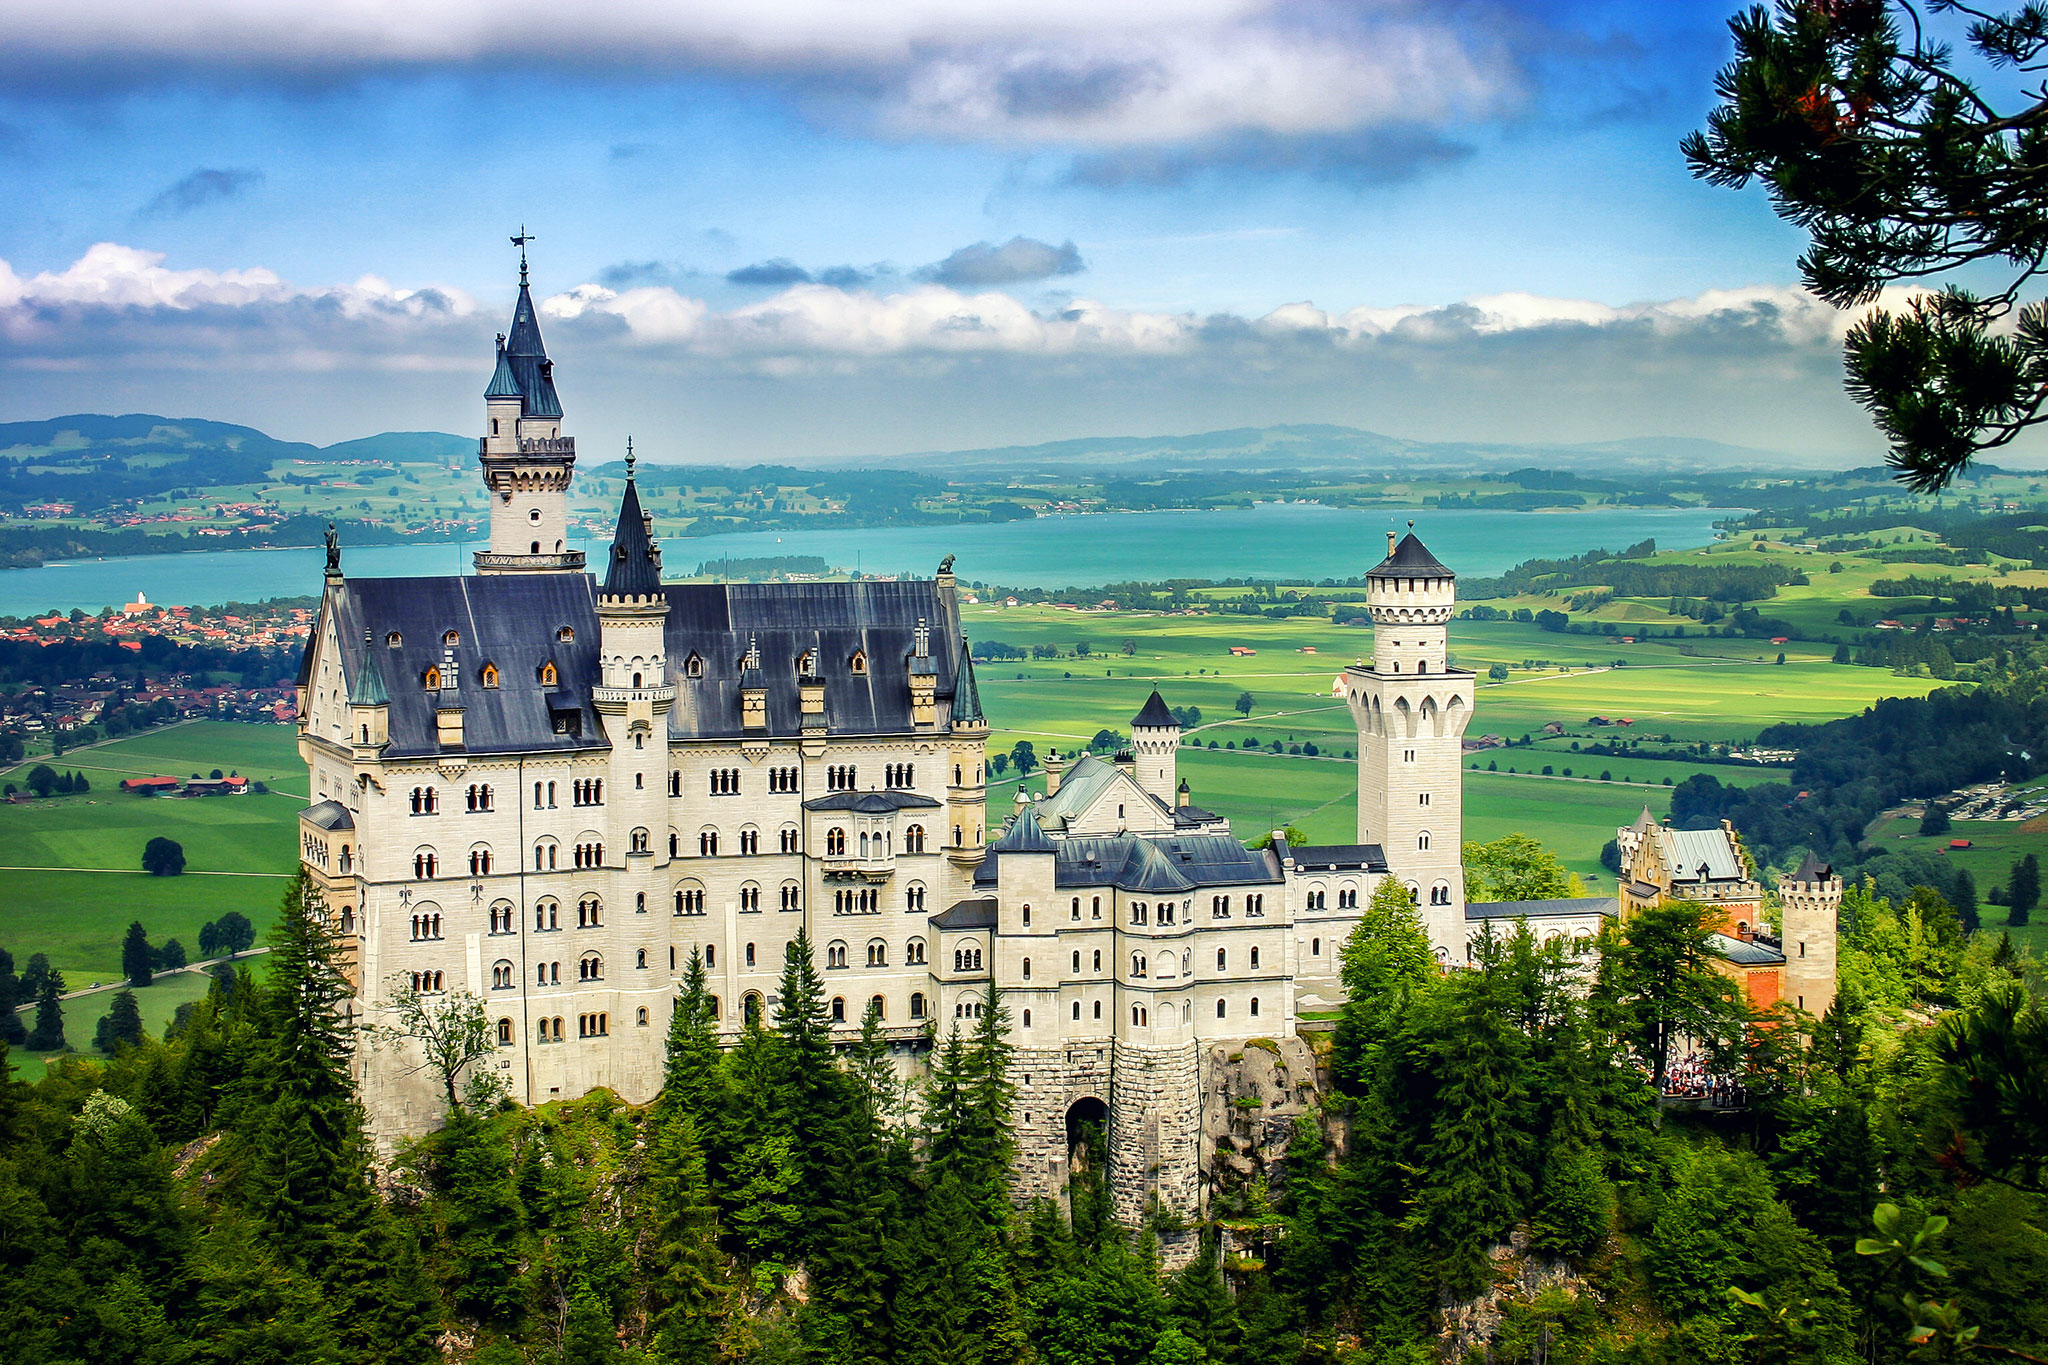 Neuschwanstein Castle from Marienbridge, Germany